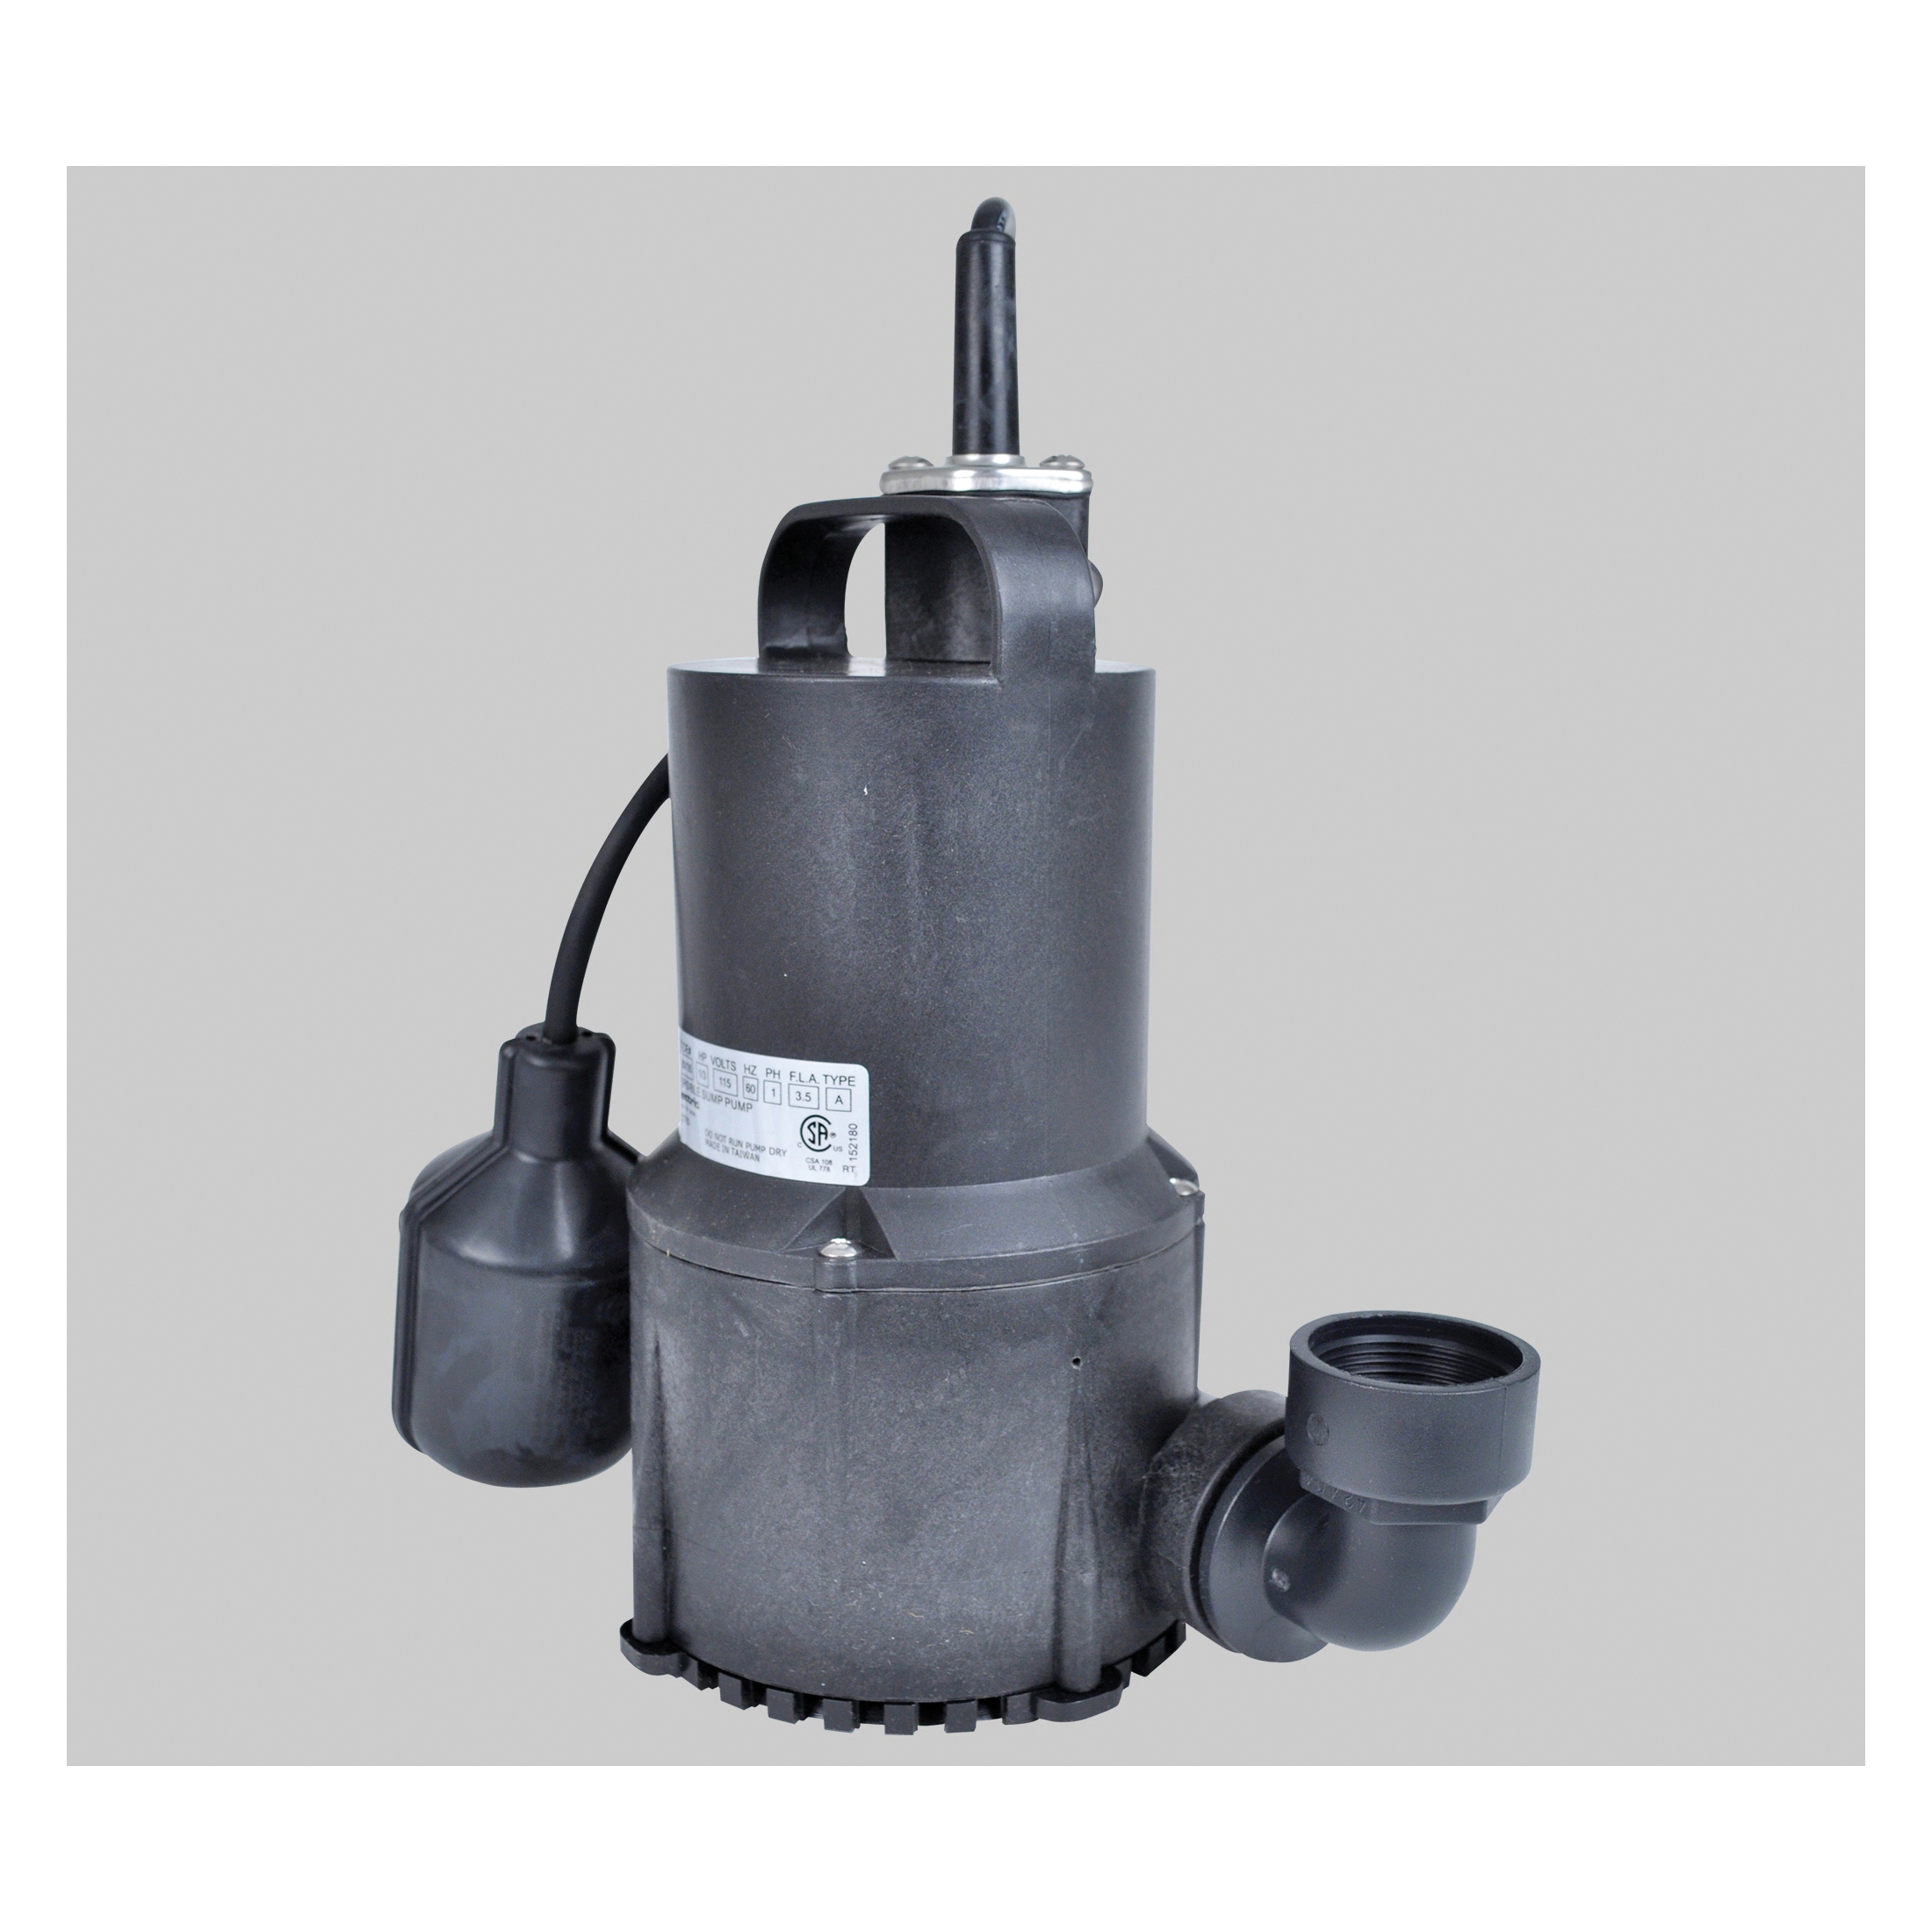 Little Giant® 620135 SP33 Submersible Sump Pump, 25 gpm Flow Rate, 1-1/4 in FNPT Outlet, 1 ph, 1/3 hp, Import